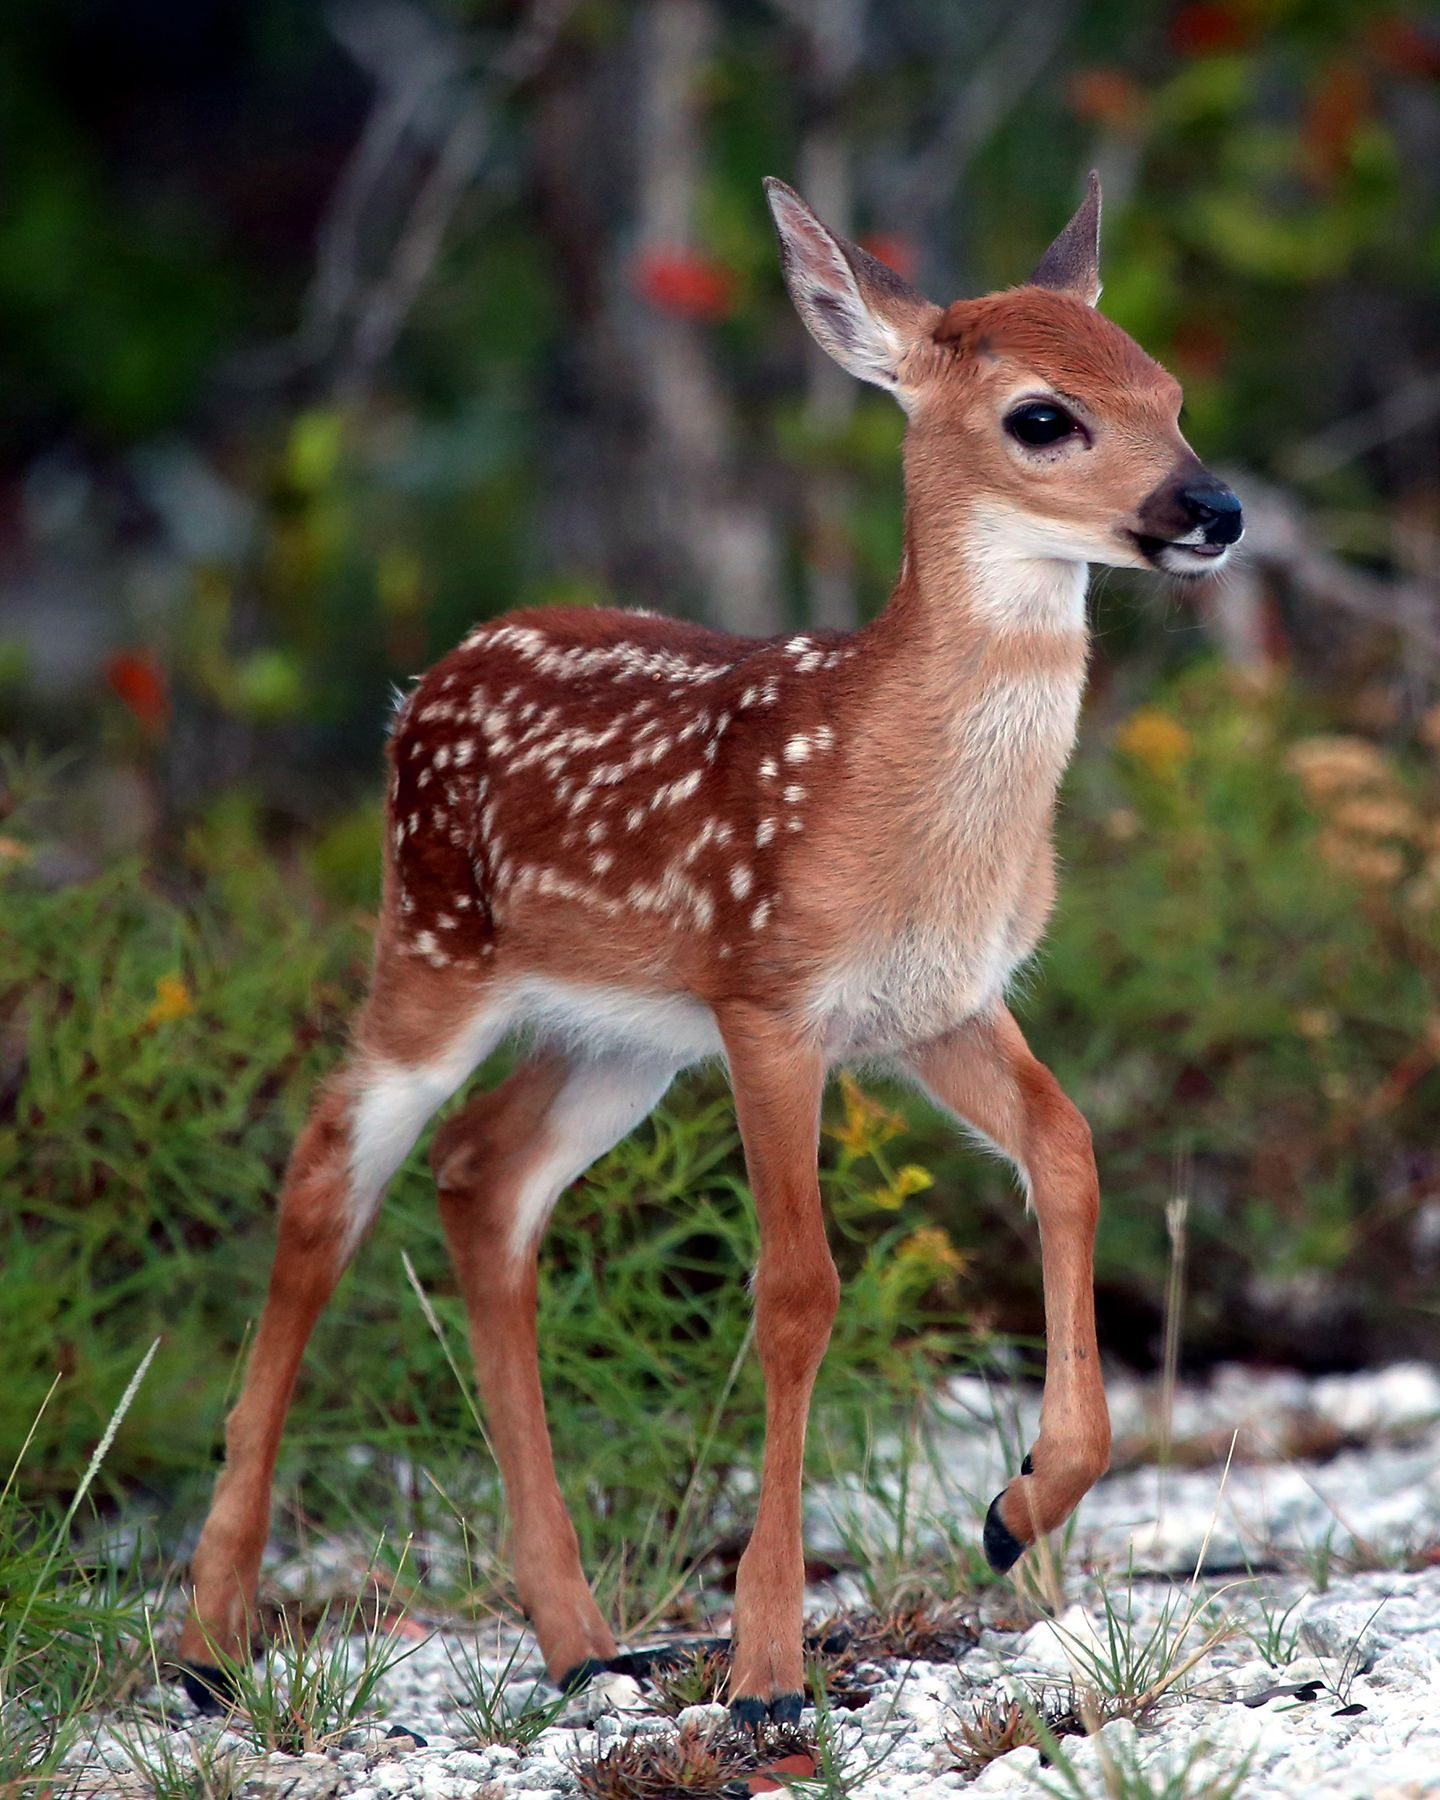 Key West The Newspaper Refuge Manager Key Deer Screwworm Threat Appears Over But We Must Remain Vigilant Cute Animals Baby Animals Pictures Baby Animals